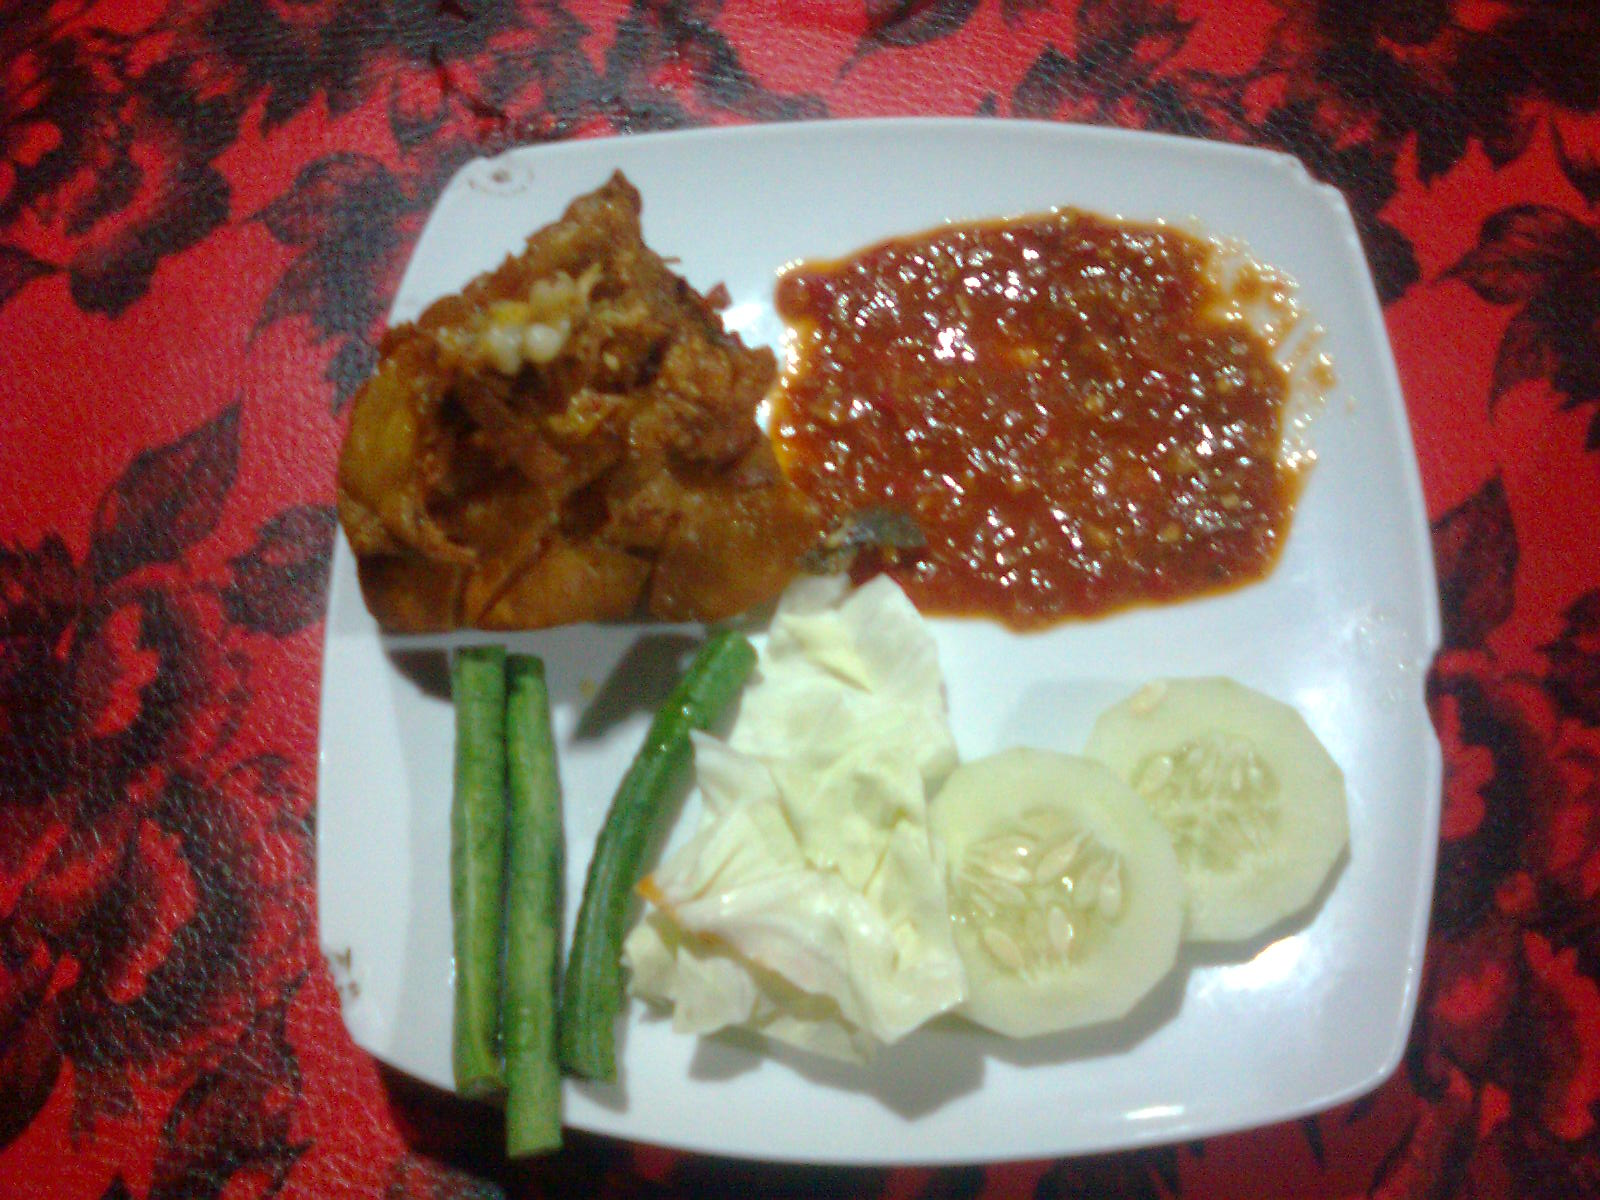 Posted by lombokkita - Monday, December 20, 2010 - Kuliner